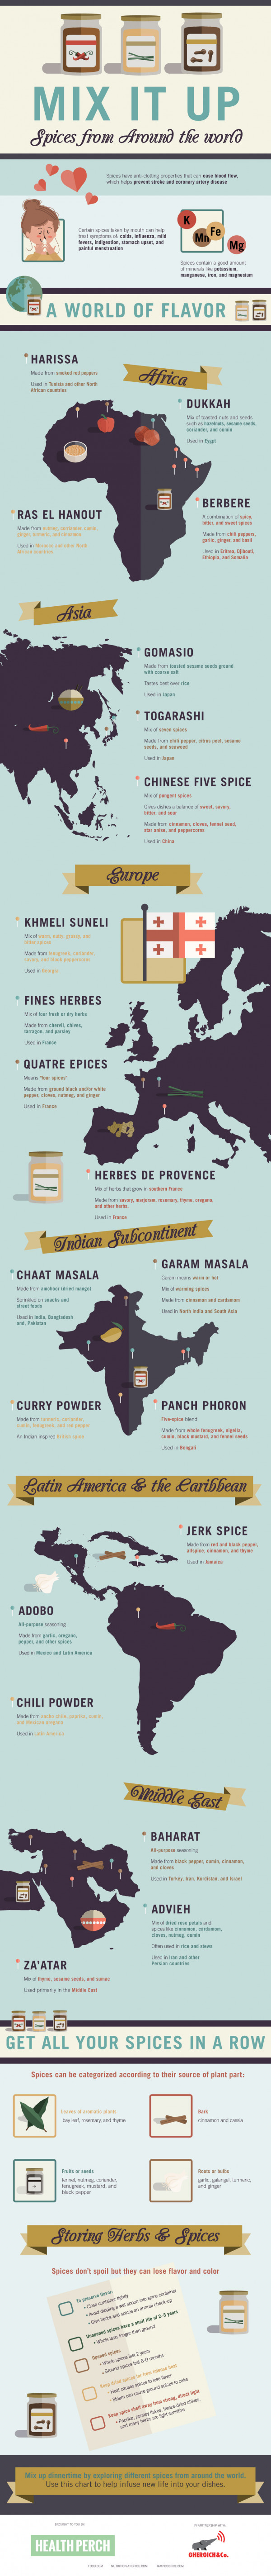 Mix It Up: Spices From Around the World